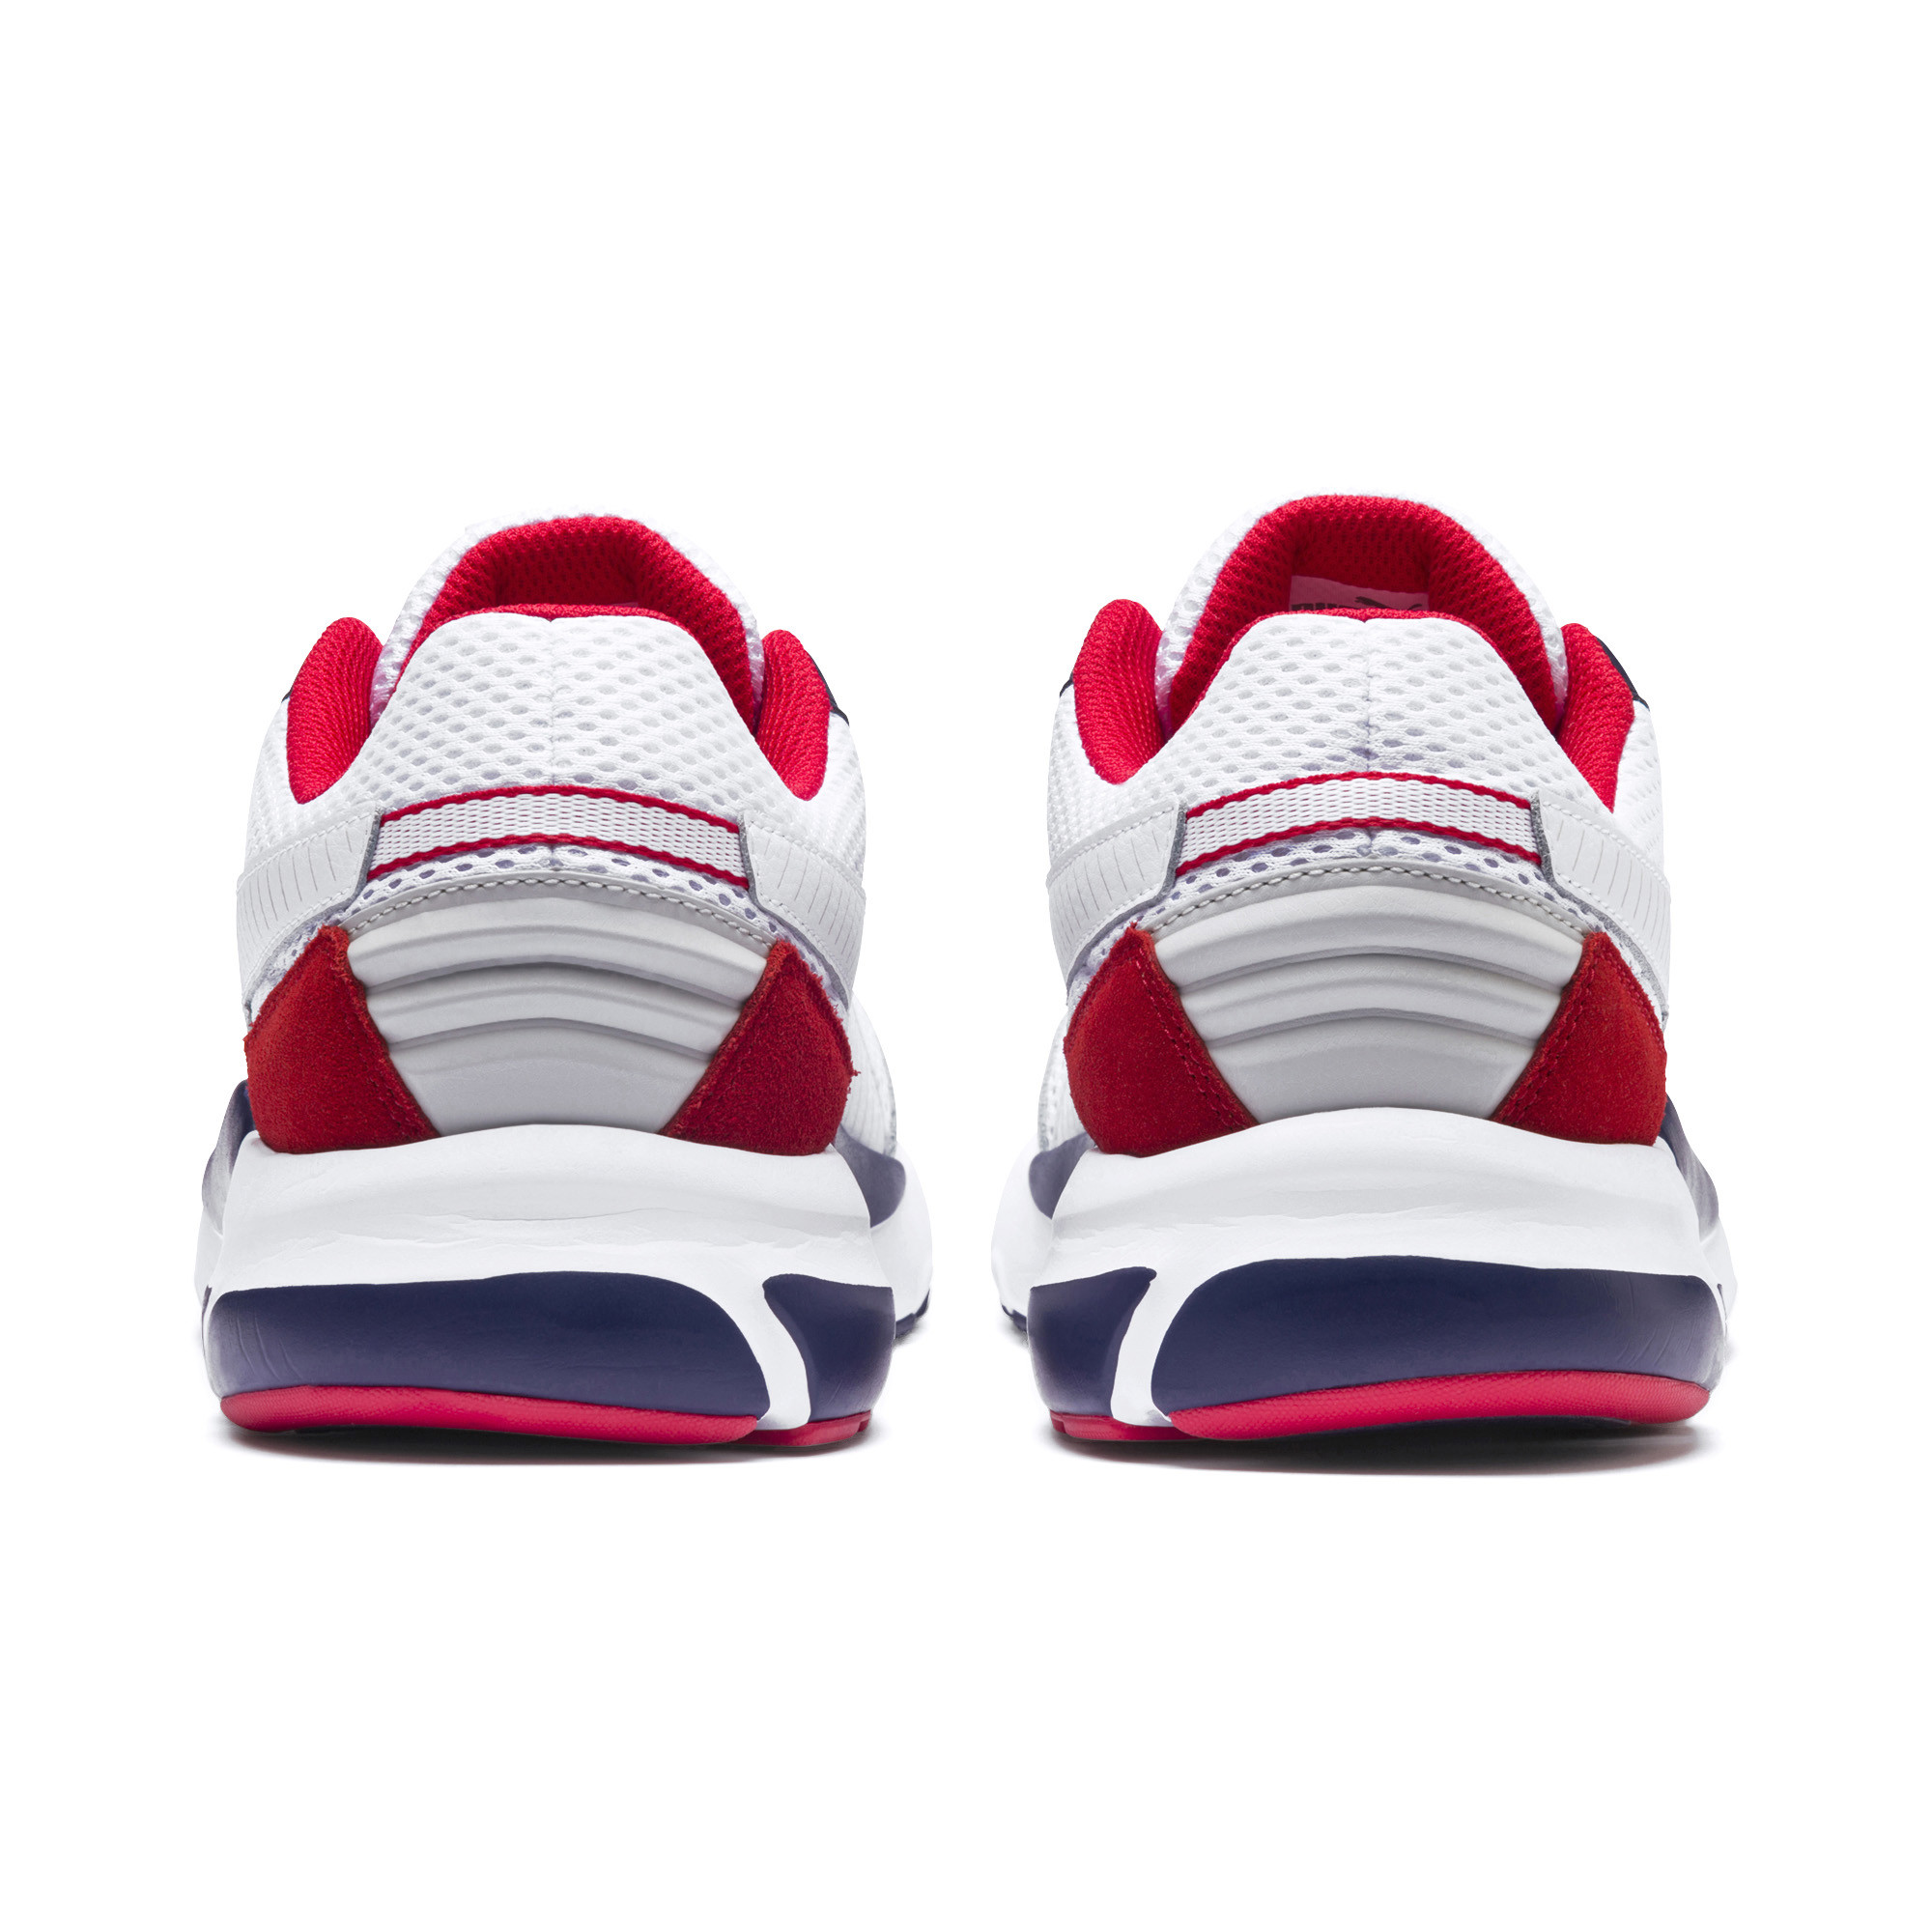 PUMA-Future-Runner-Premium-Men-039-s-Running-Shoes-Men-Shoe-Basics thumbnail 3